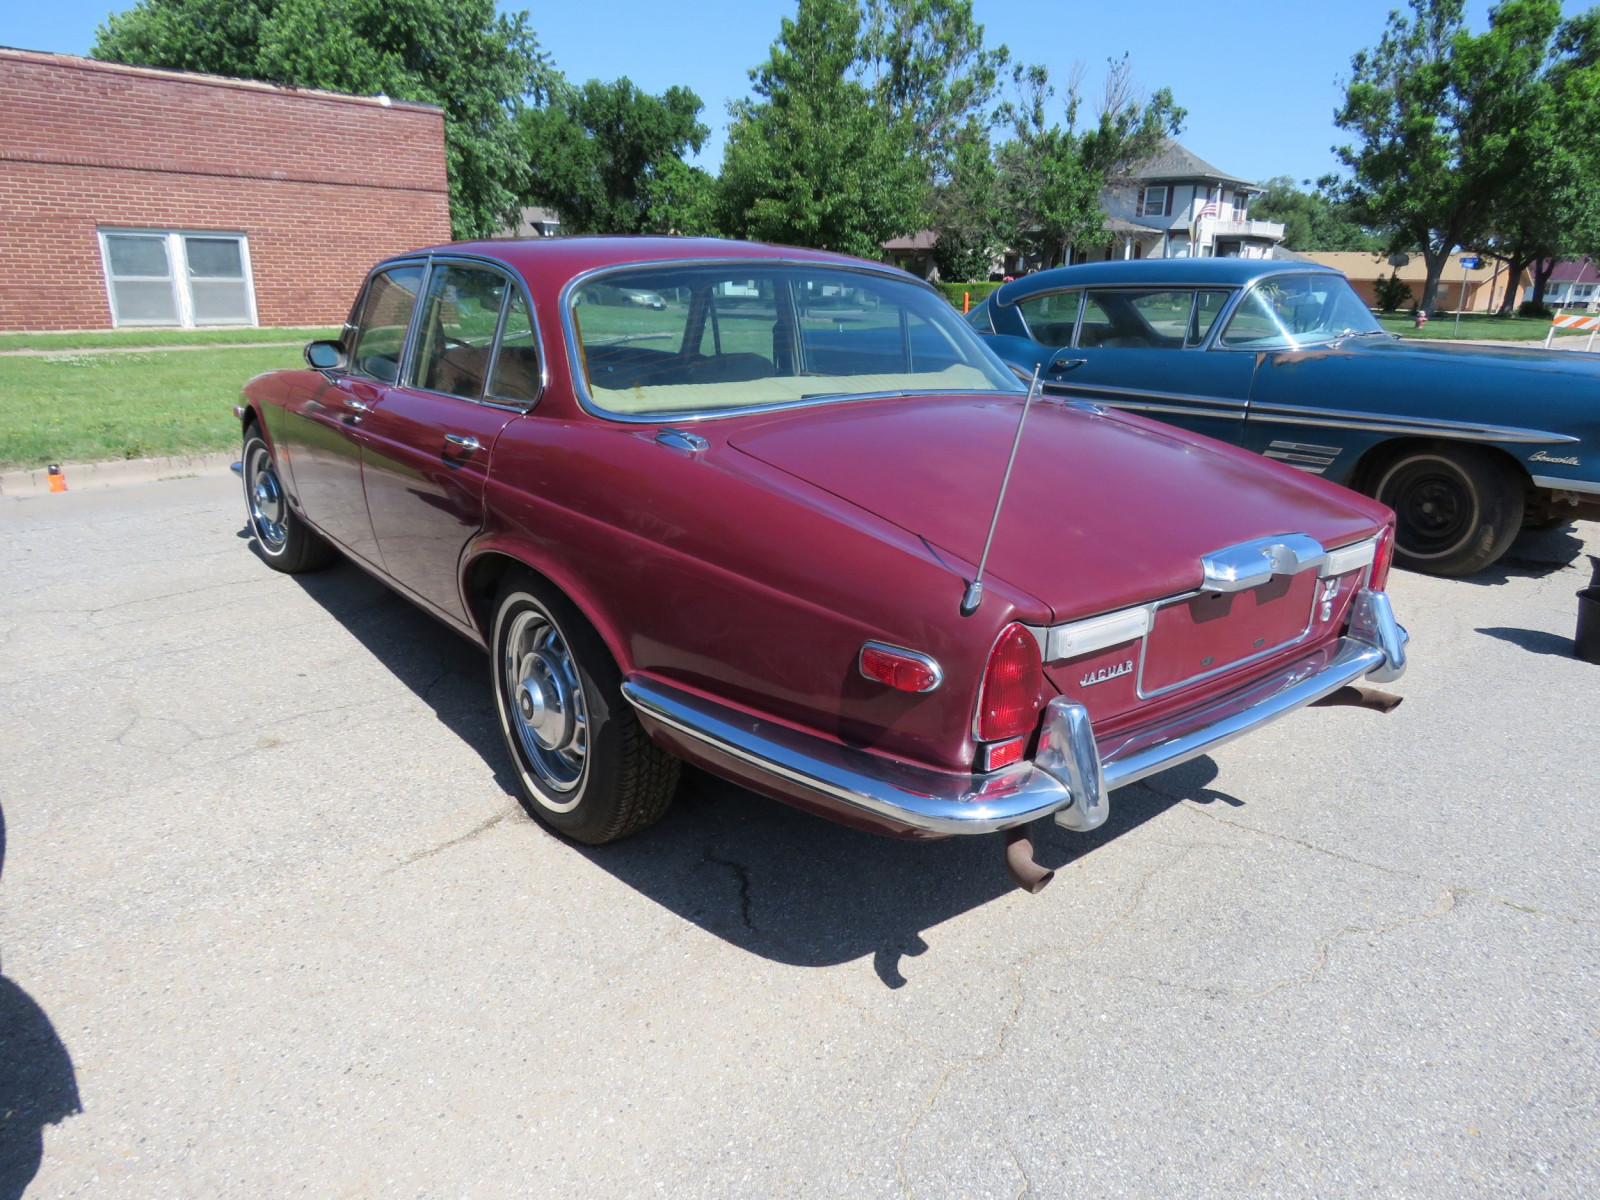 1973 JAGUAR XJ6 4DR SEDAN - Image 7